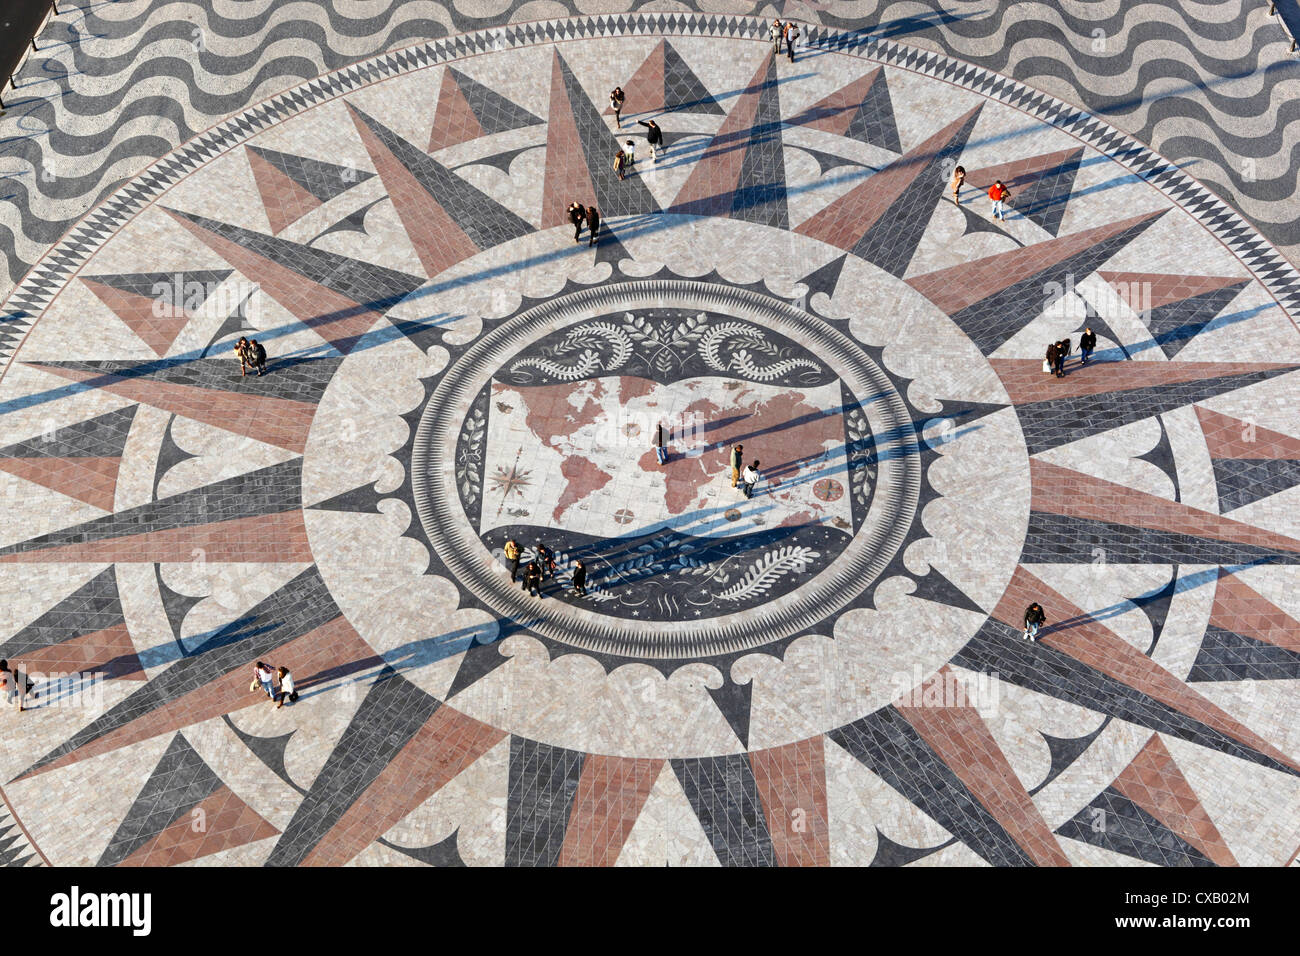 Pavement map showing routes of Portugese explorers below Monument to the Discoveries, Belem, Lisbon, Portugal, Europe - Stock Image